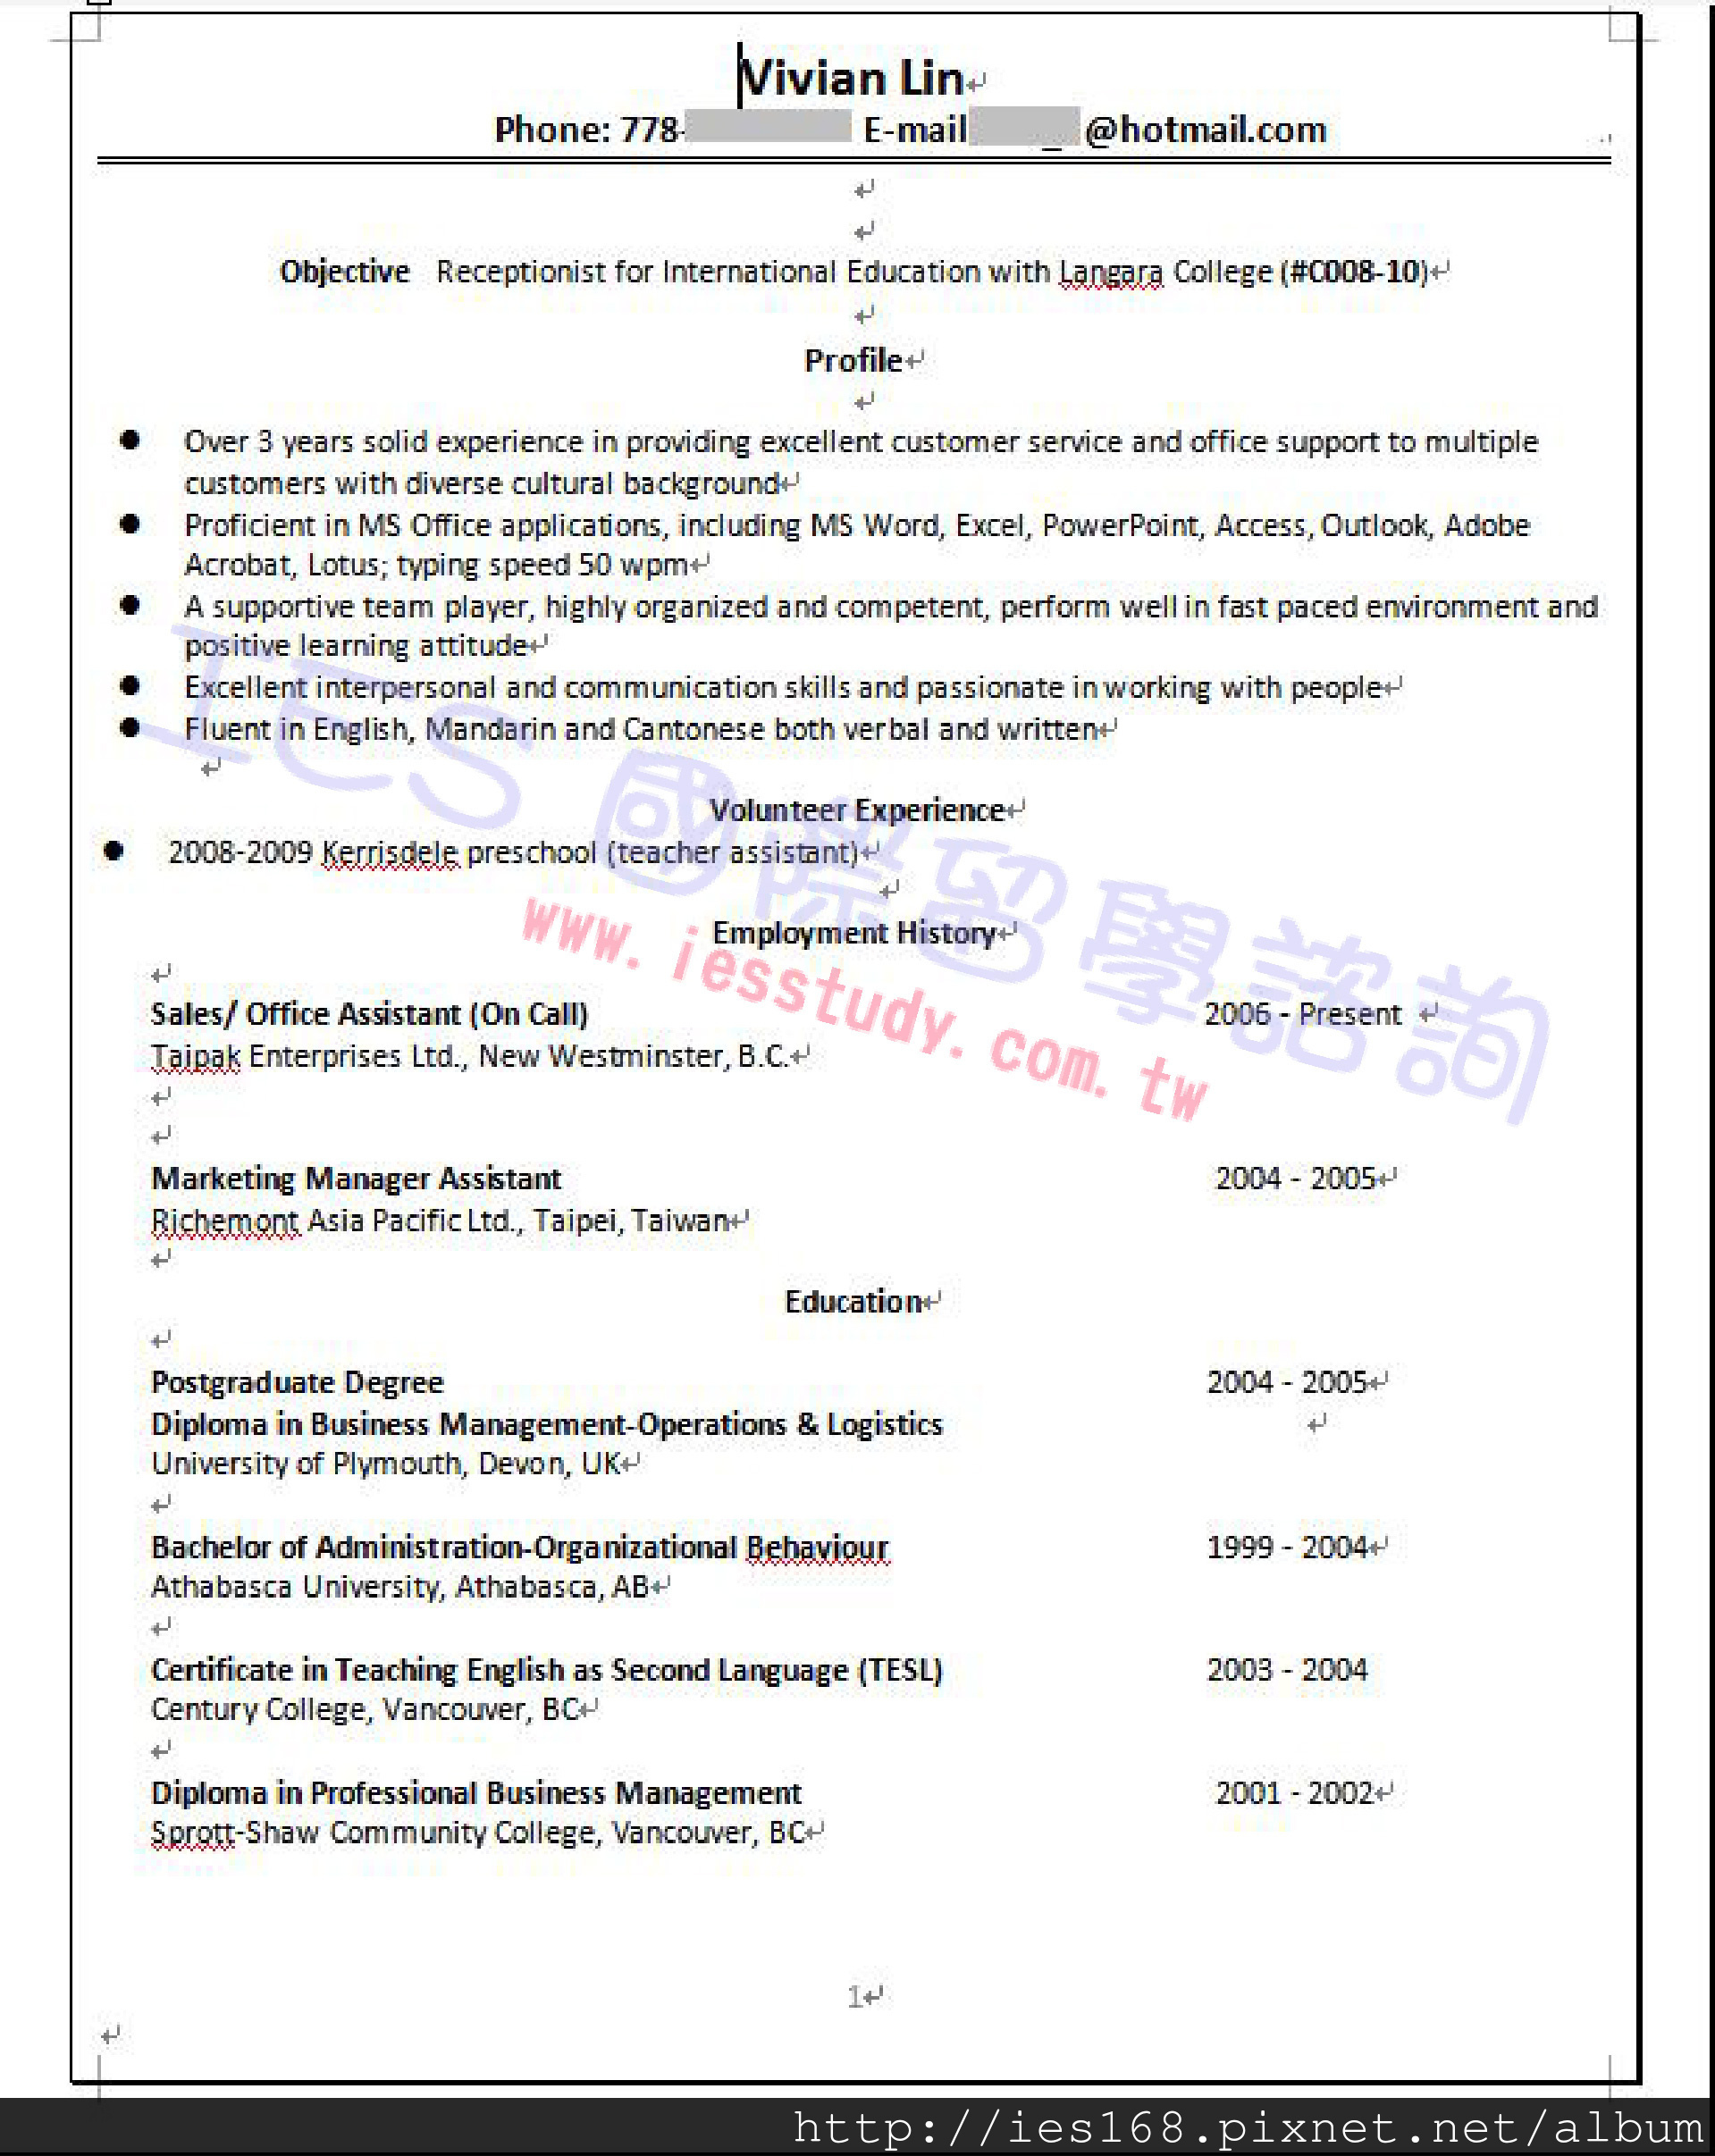 Write My Research Paper for Me - in objective resume sample - 2017/10/10